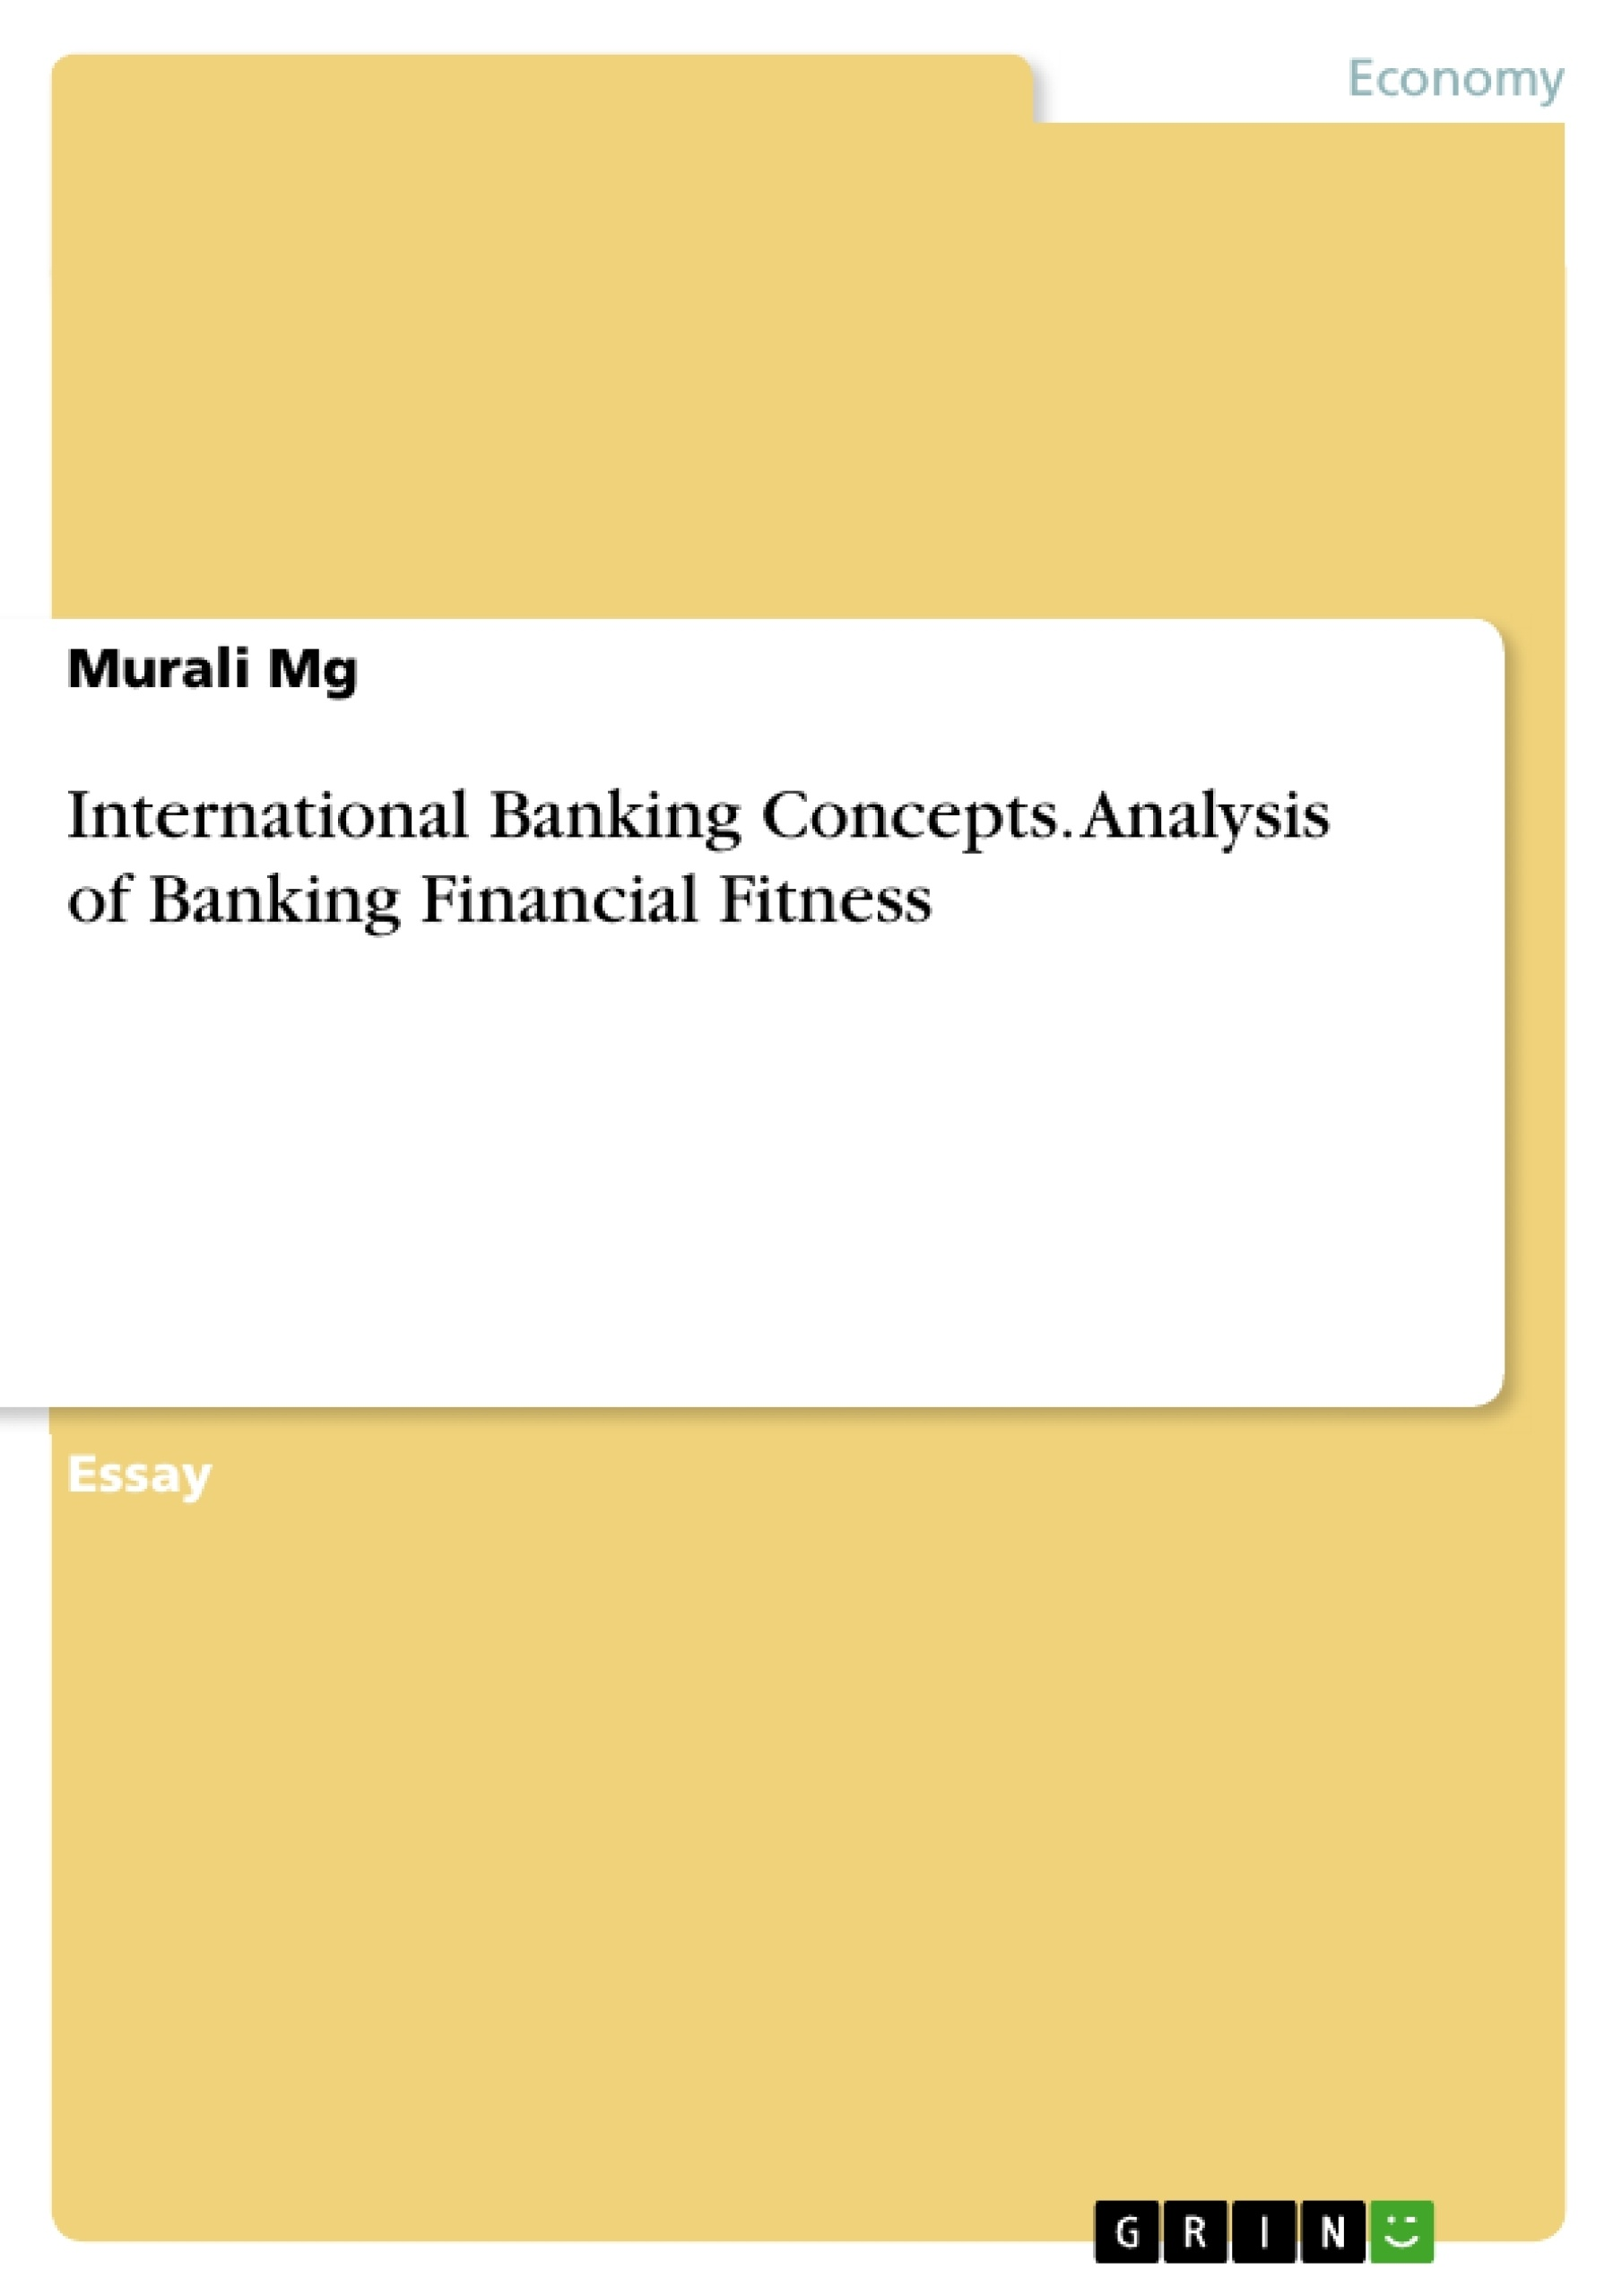 Title: International Banking Concepts. Analysis of Banking Financial Fitness